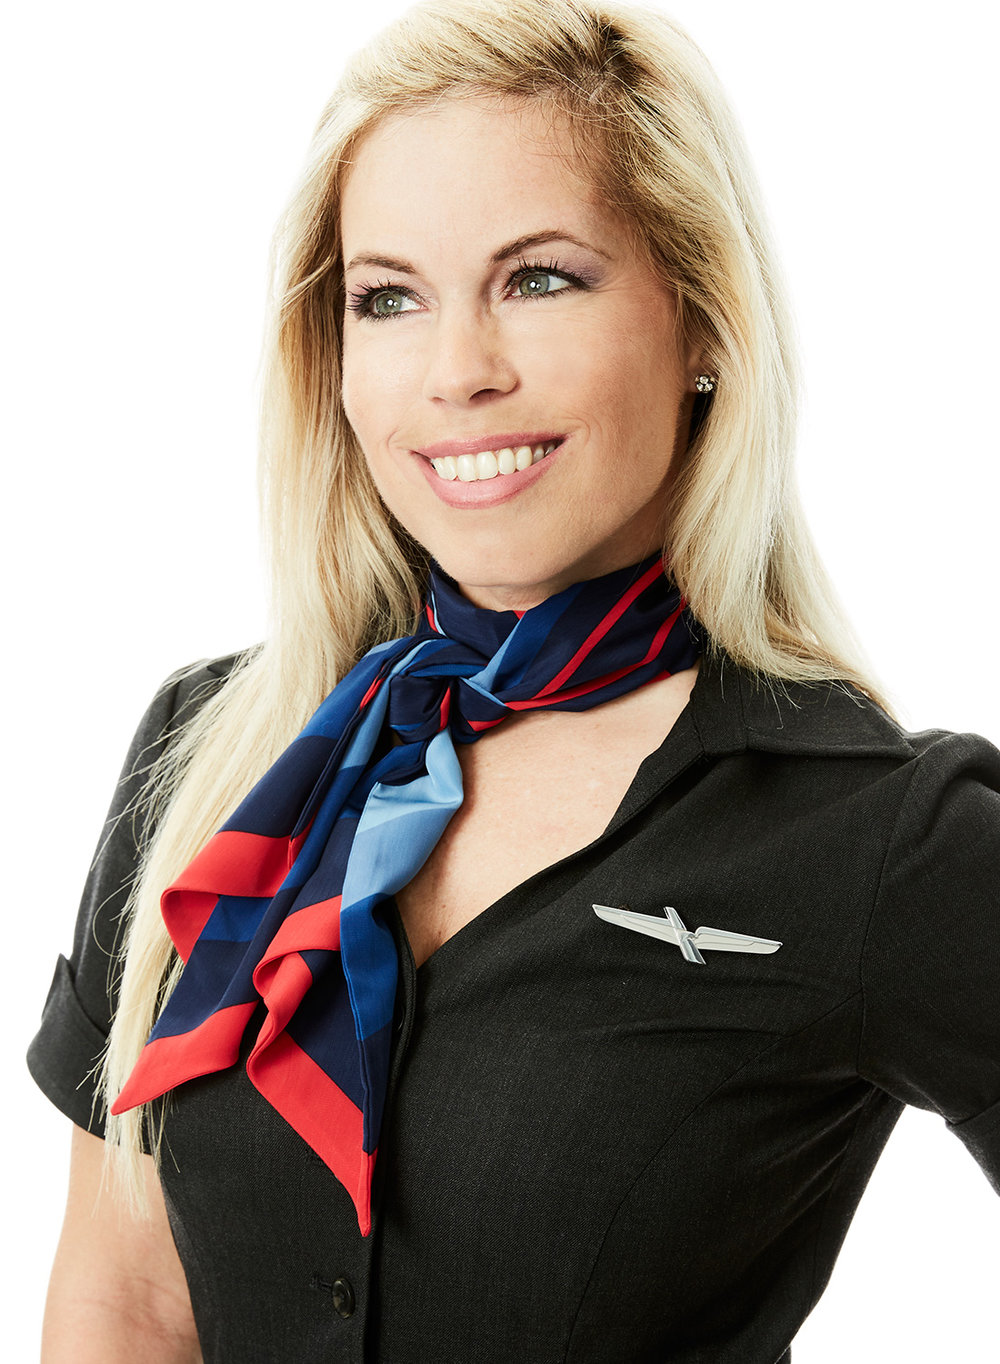 160920_AmericanAirlines_Portraits_By_BriJohnson_0004.jpg